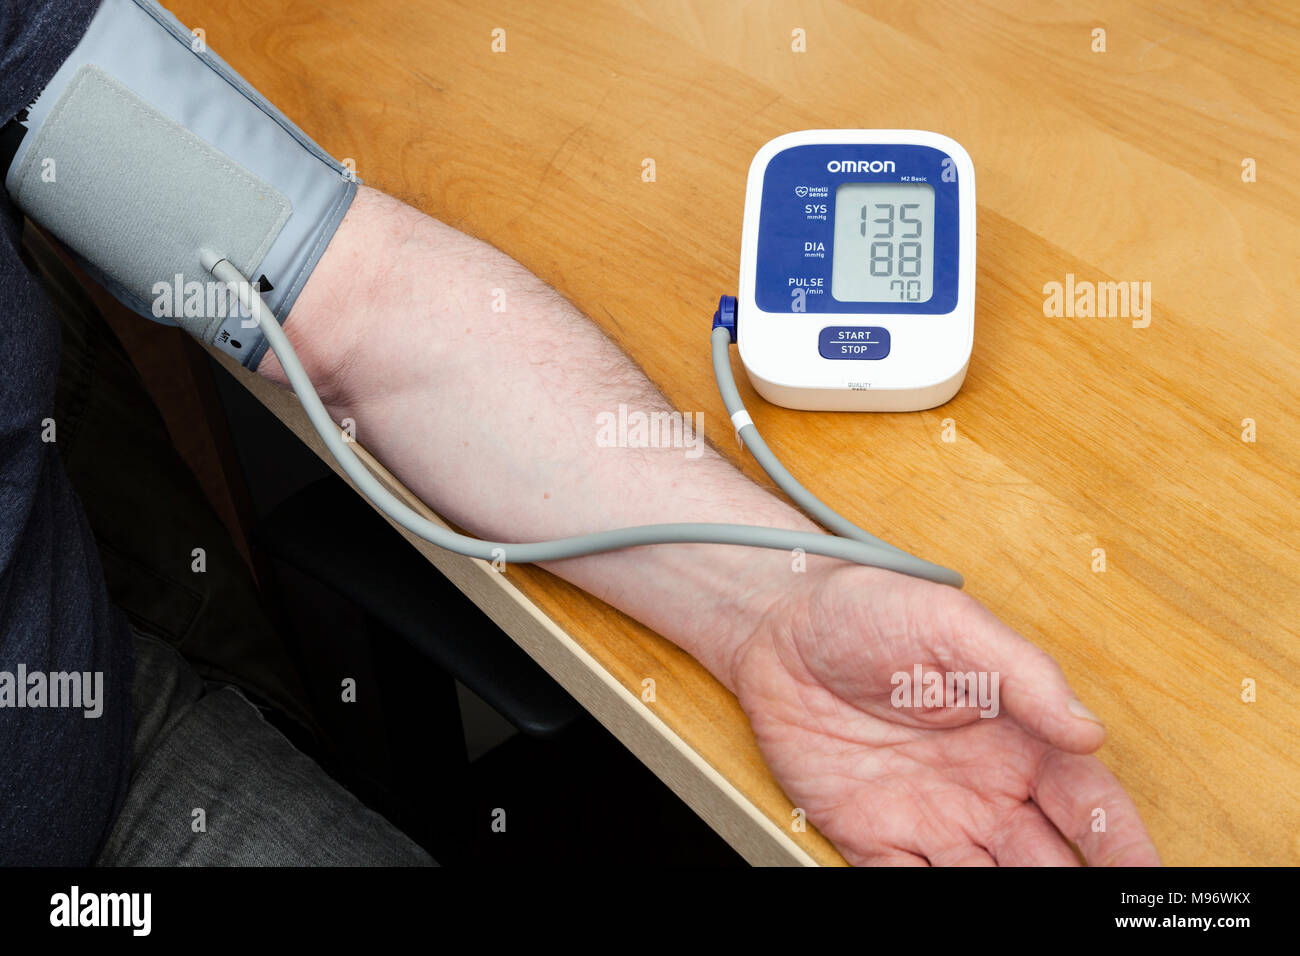 Person using an Omron blood pressure monitor attached to their arm - Stock Image